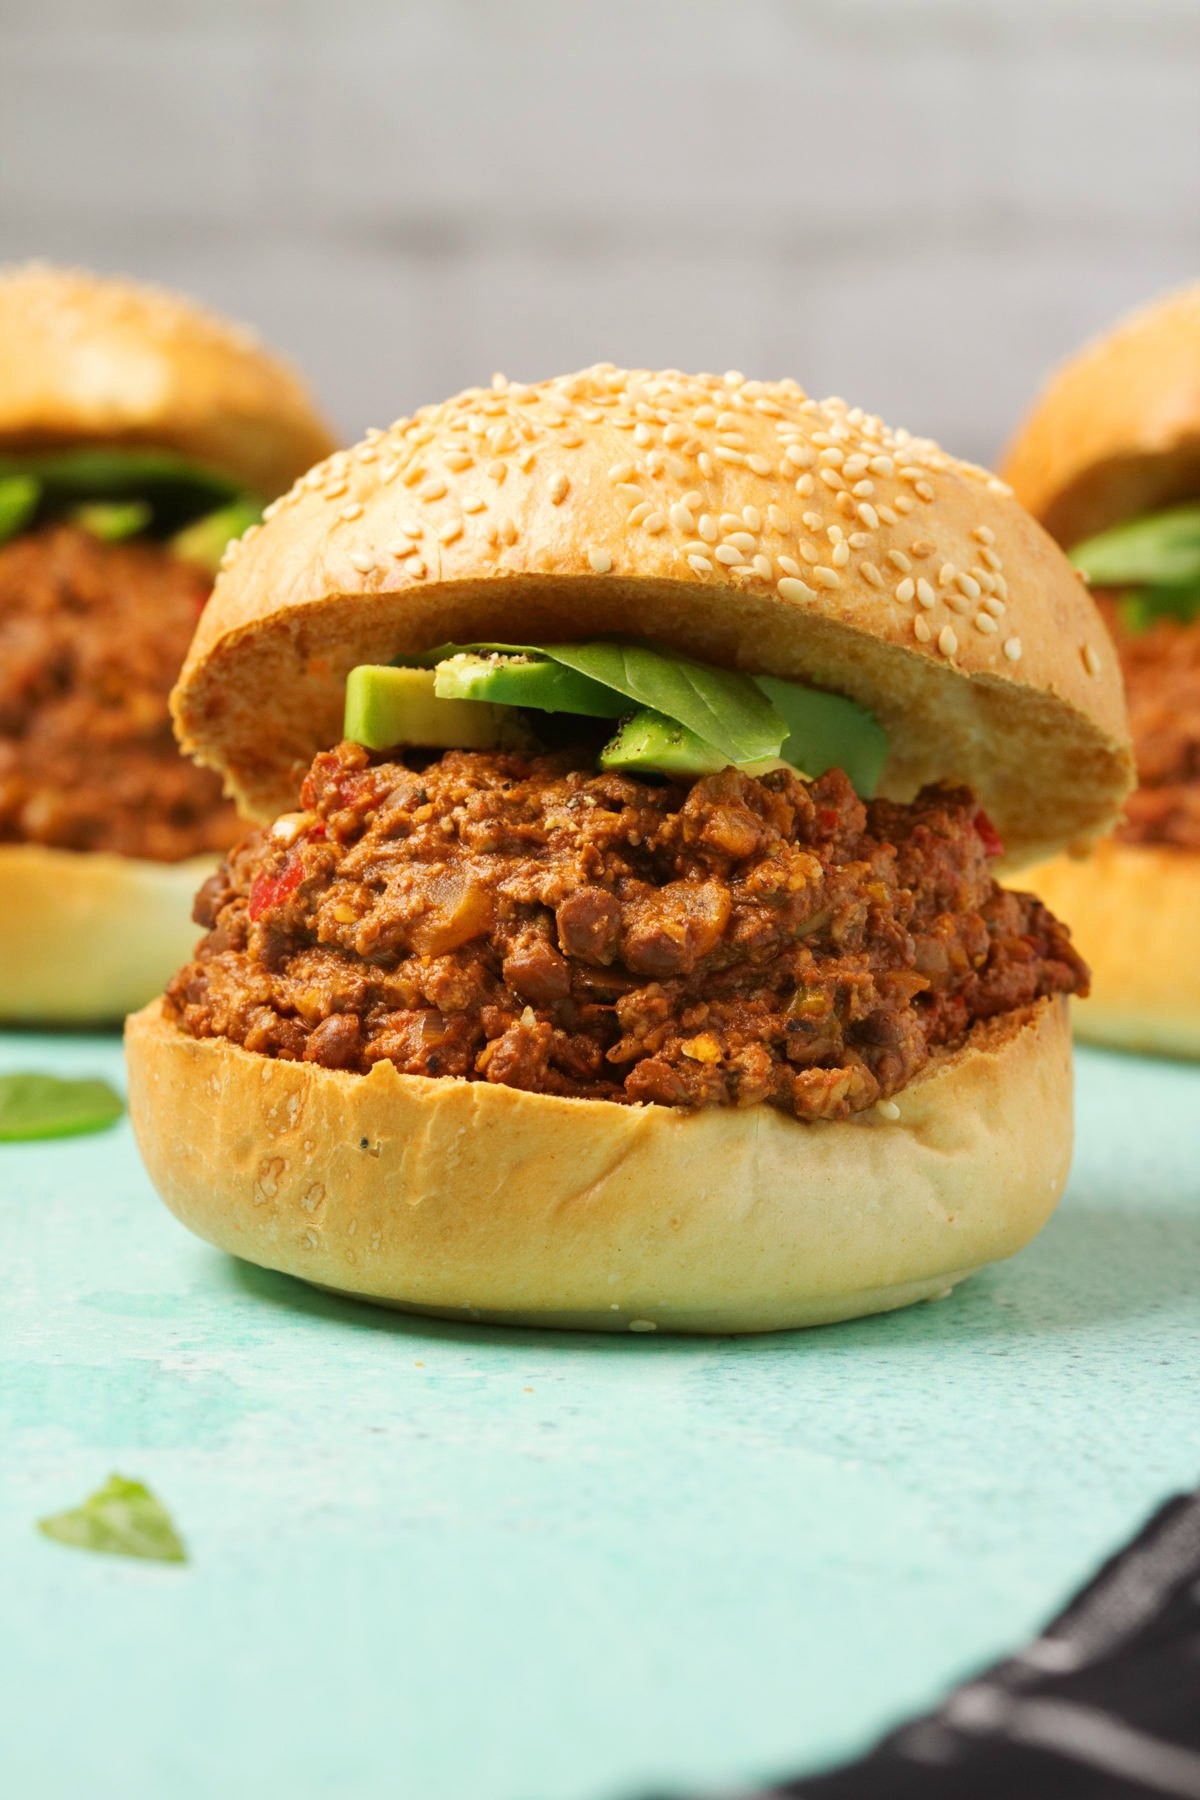 Vegan Sloppy Joe with homemade vegan mince and topped with sliced avocado and fresh basil leaves.